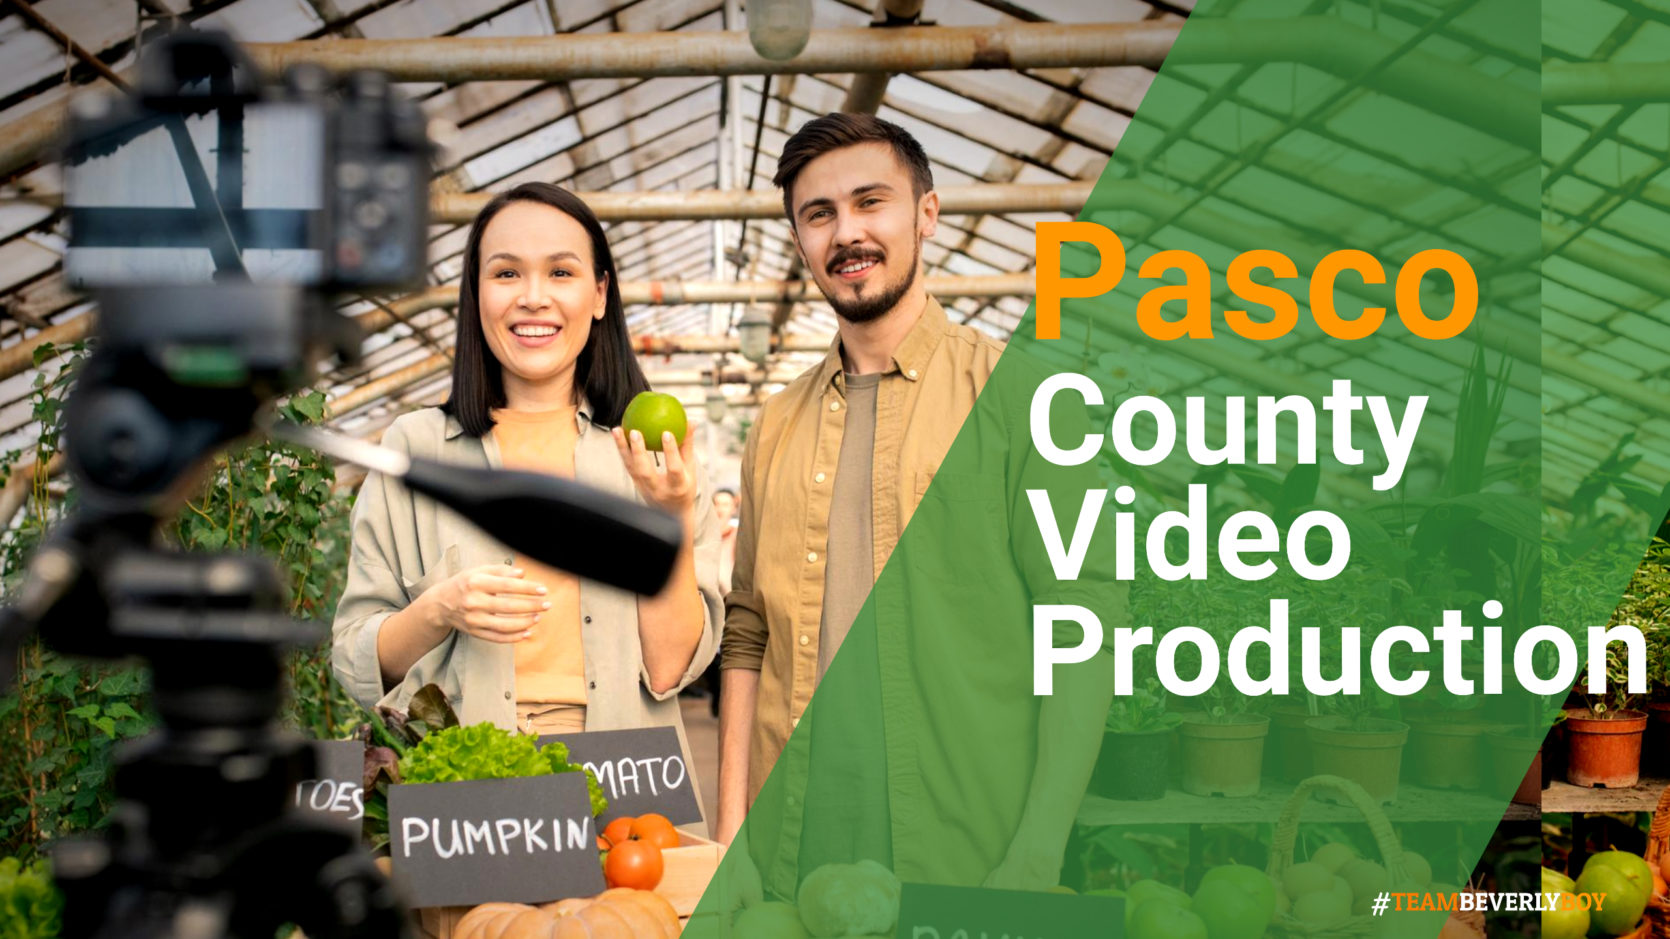 Pasco County video production